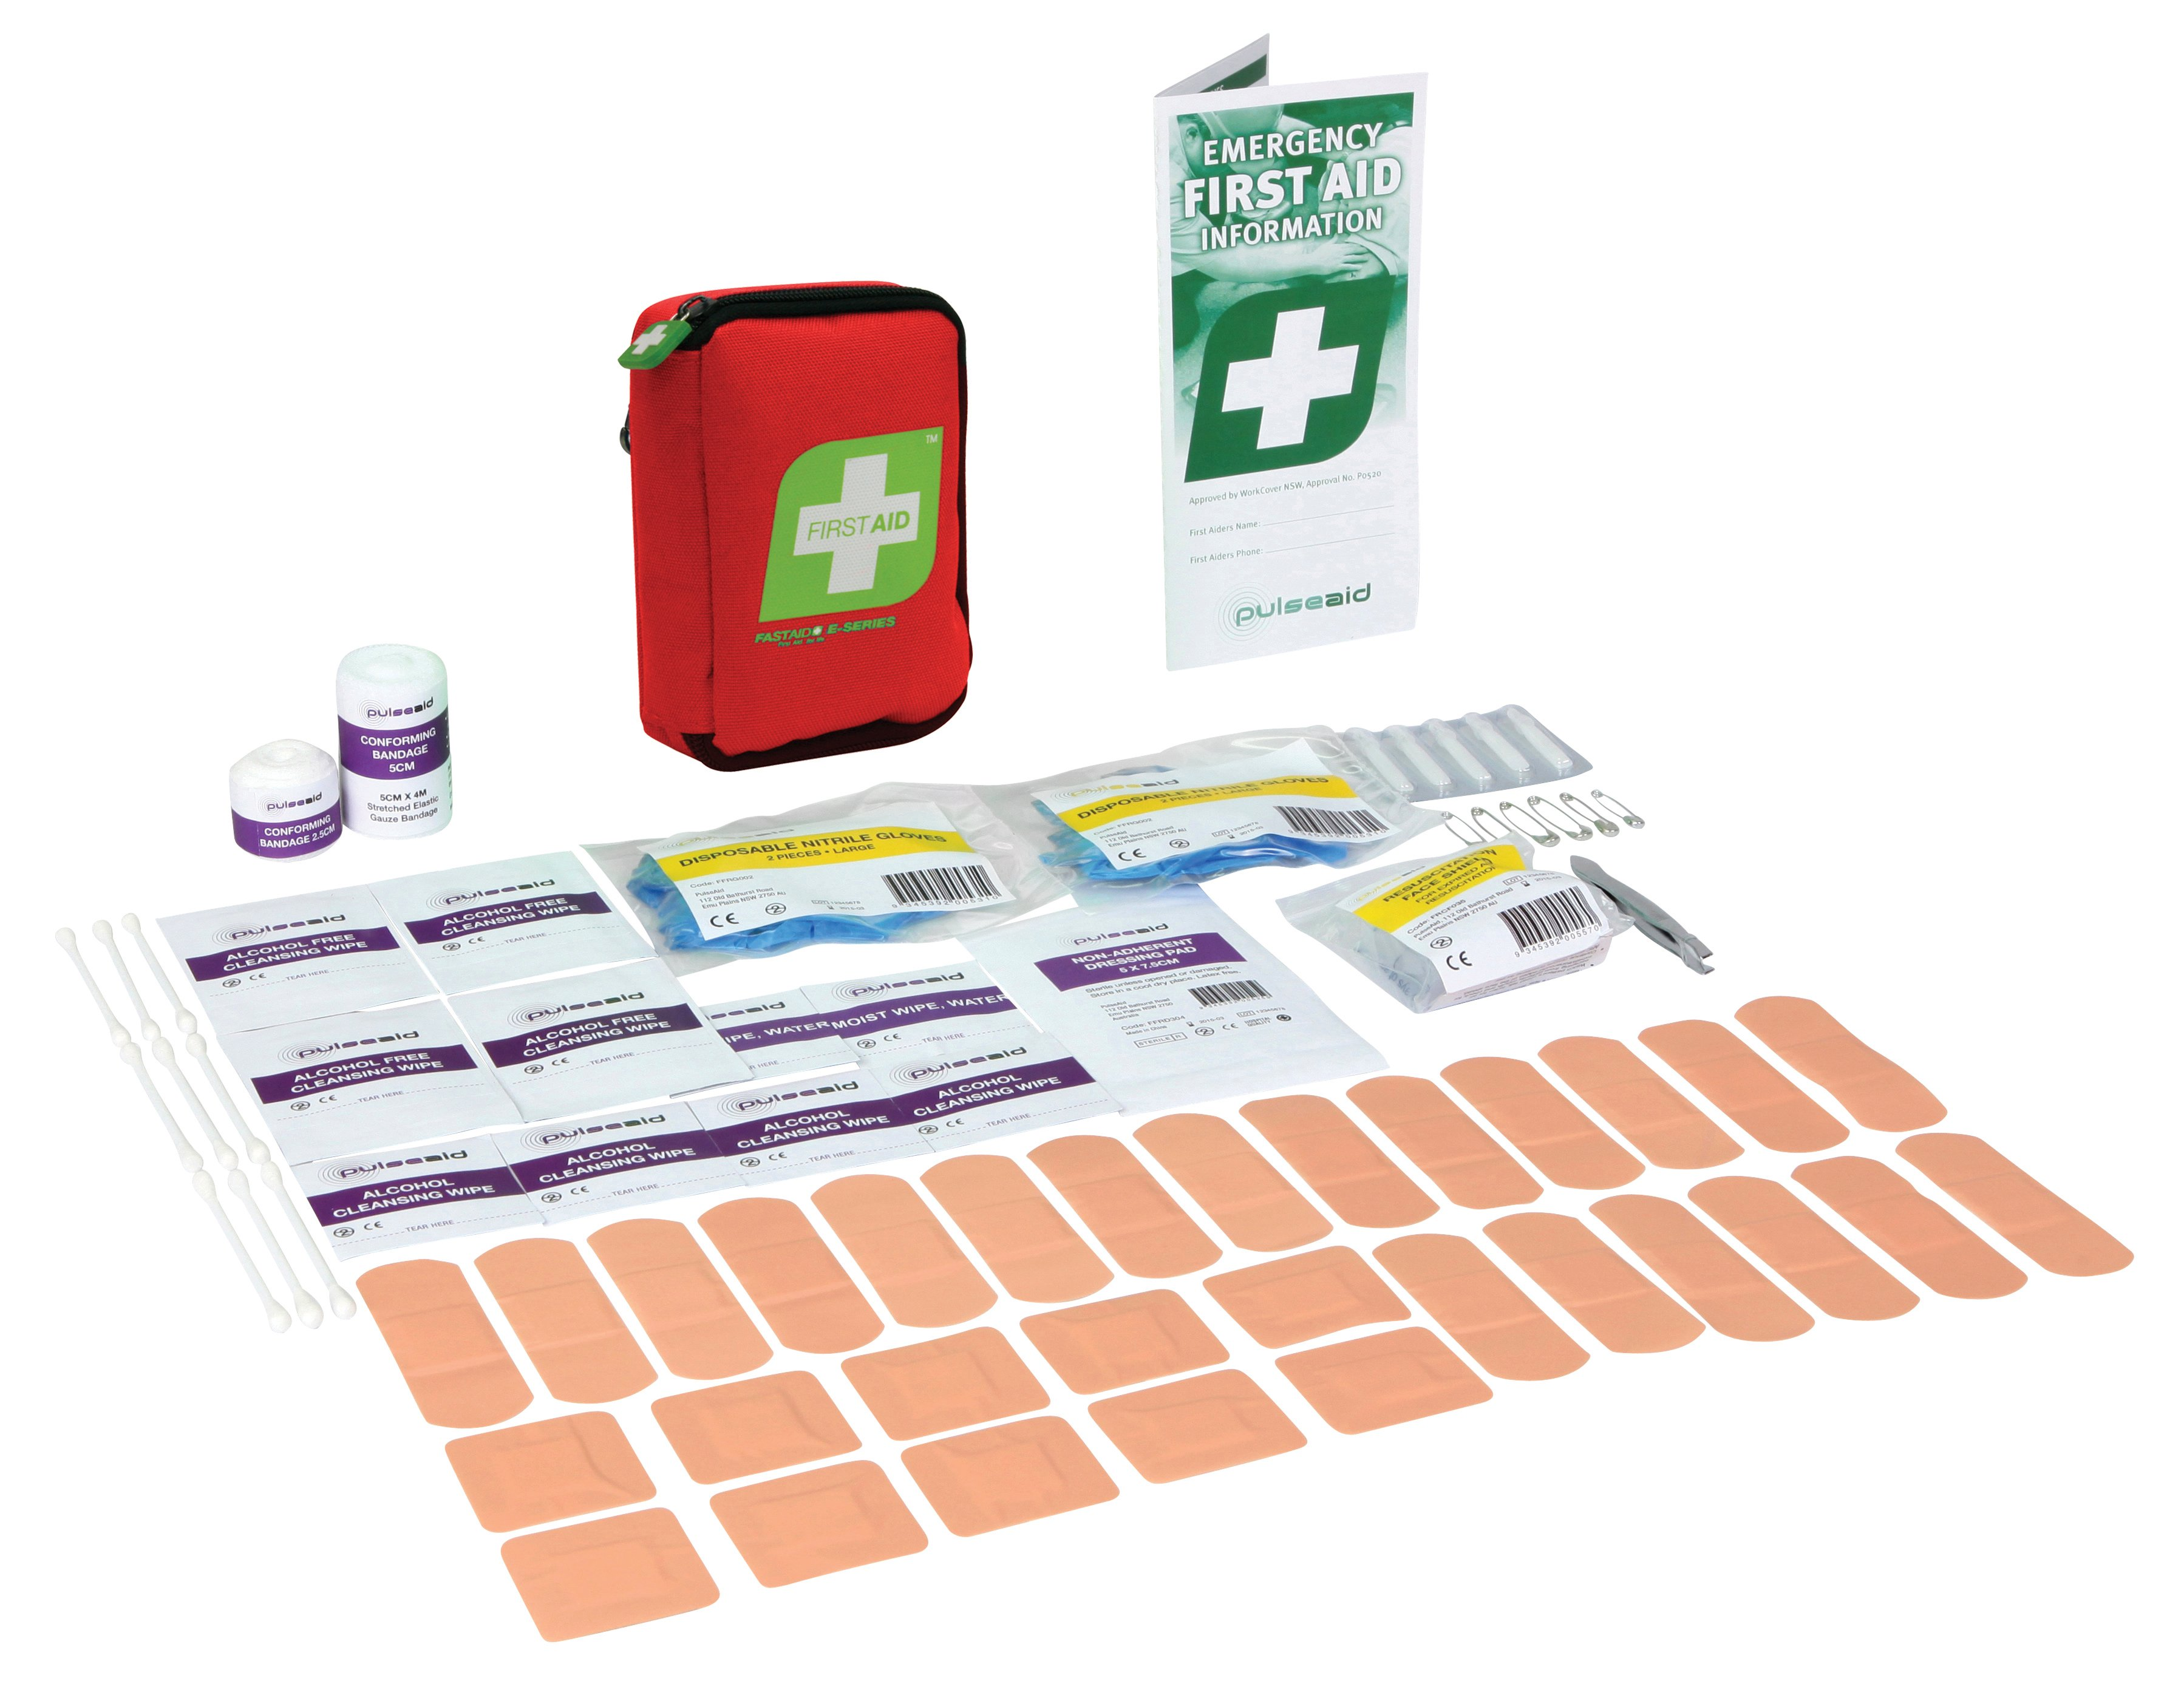 E-Series Compact First Aid Kit, Red Soft Pack